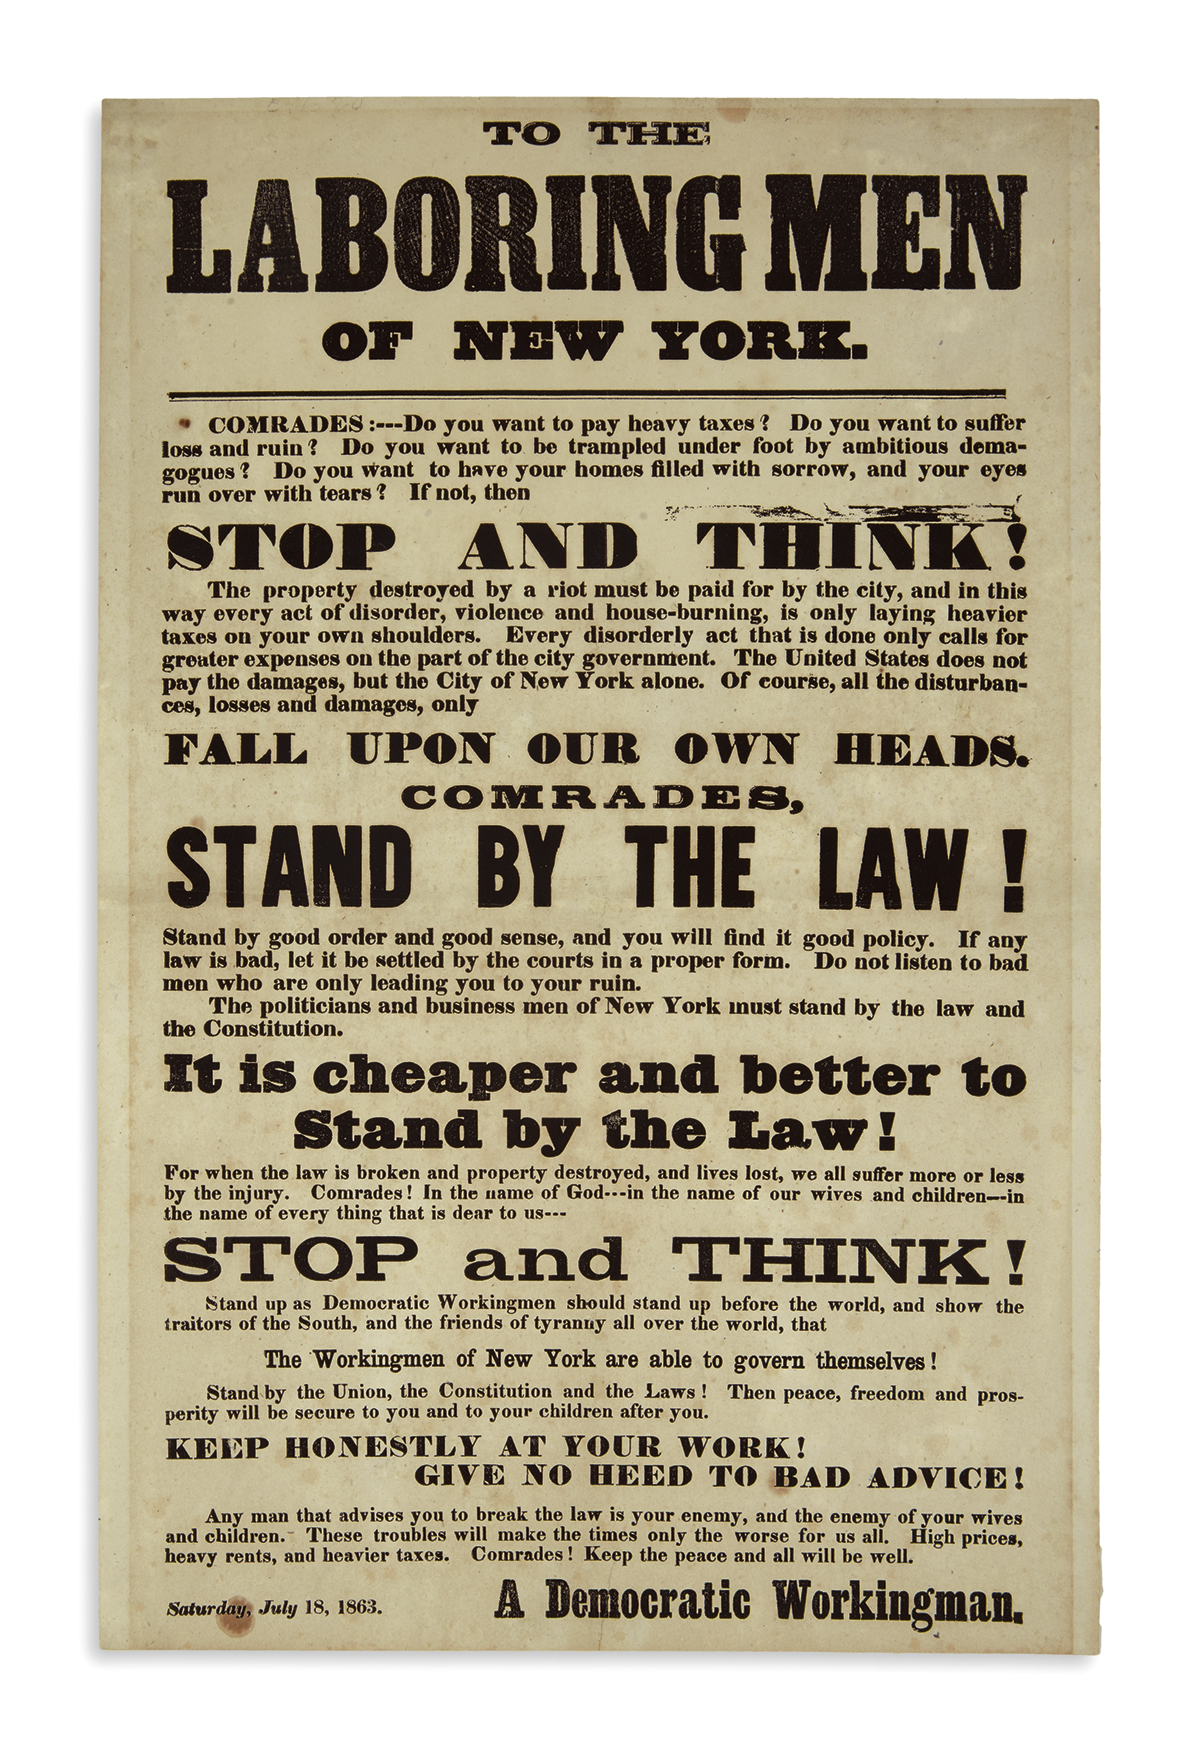 (CIVIL WAR--NEW YORK.) To the Laboring Men of New York . . . Stop and Think! . . . Stand by the Law!